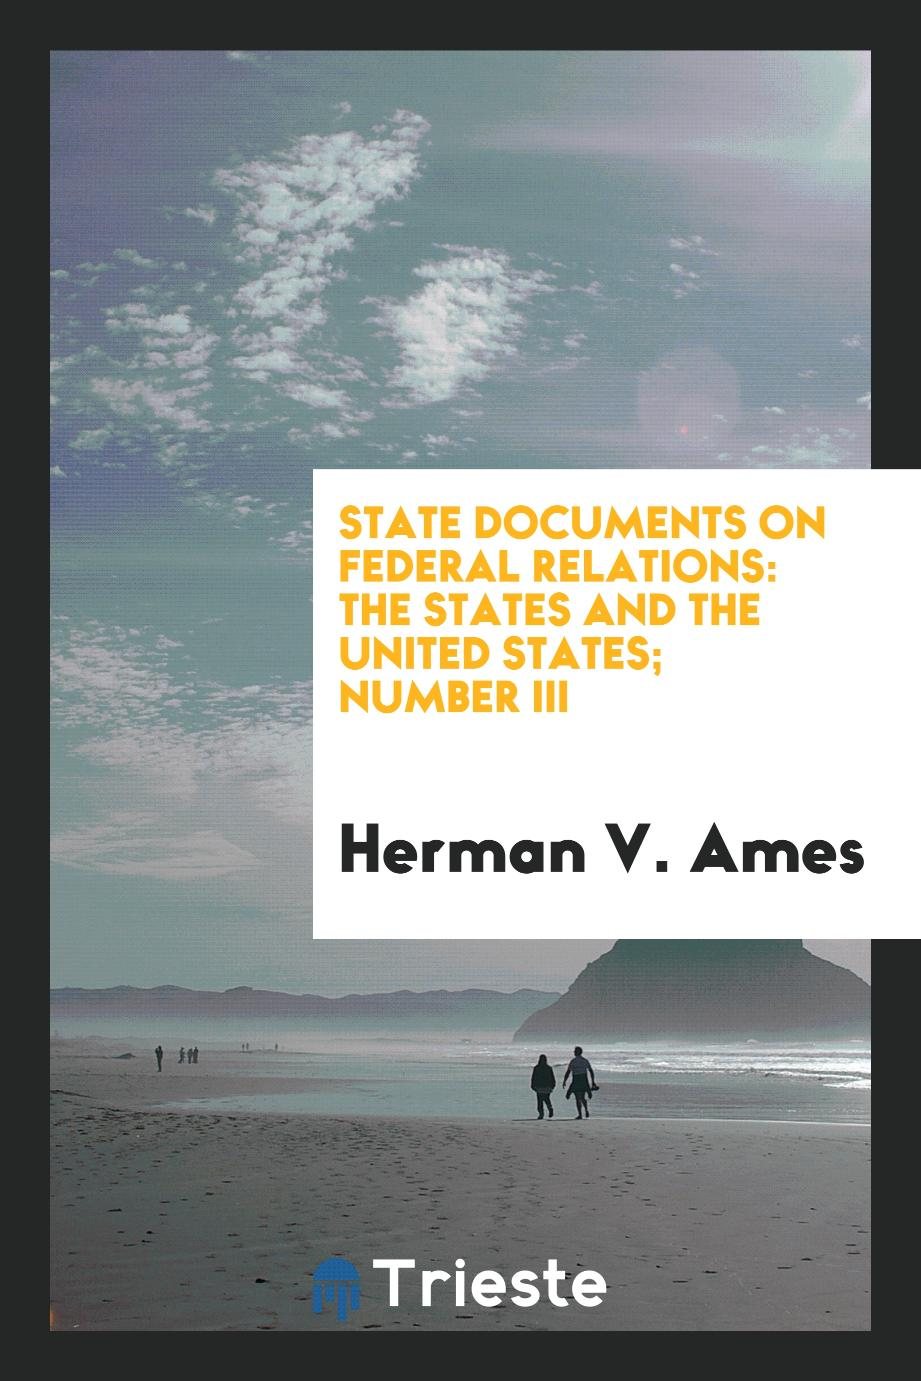 State documents on Federal relations: the States and the United States; Number III